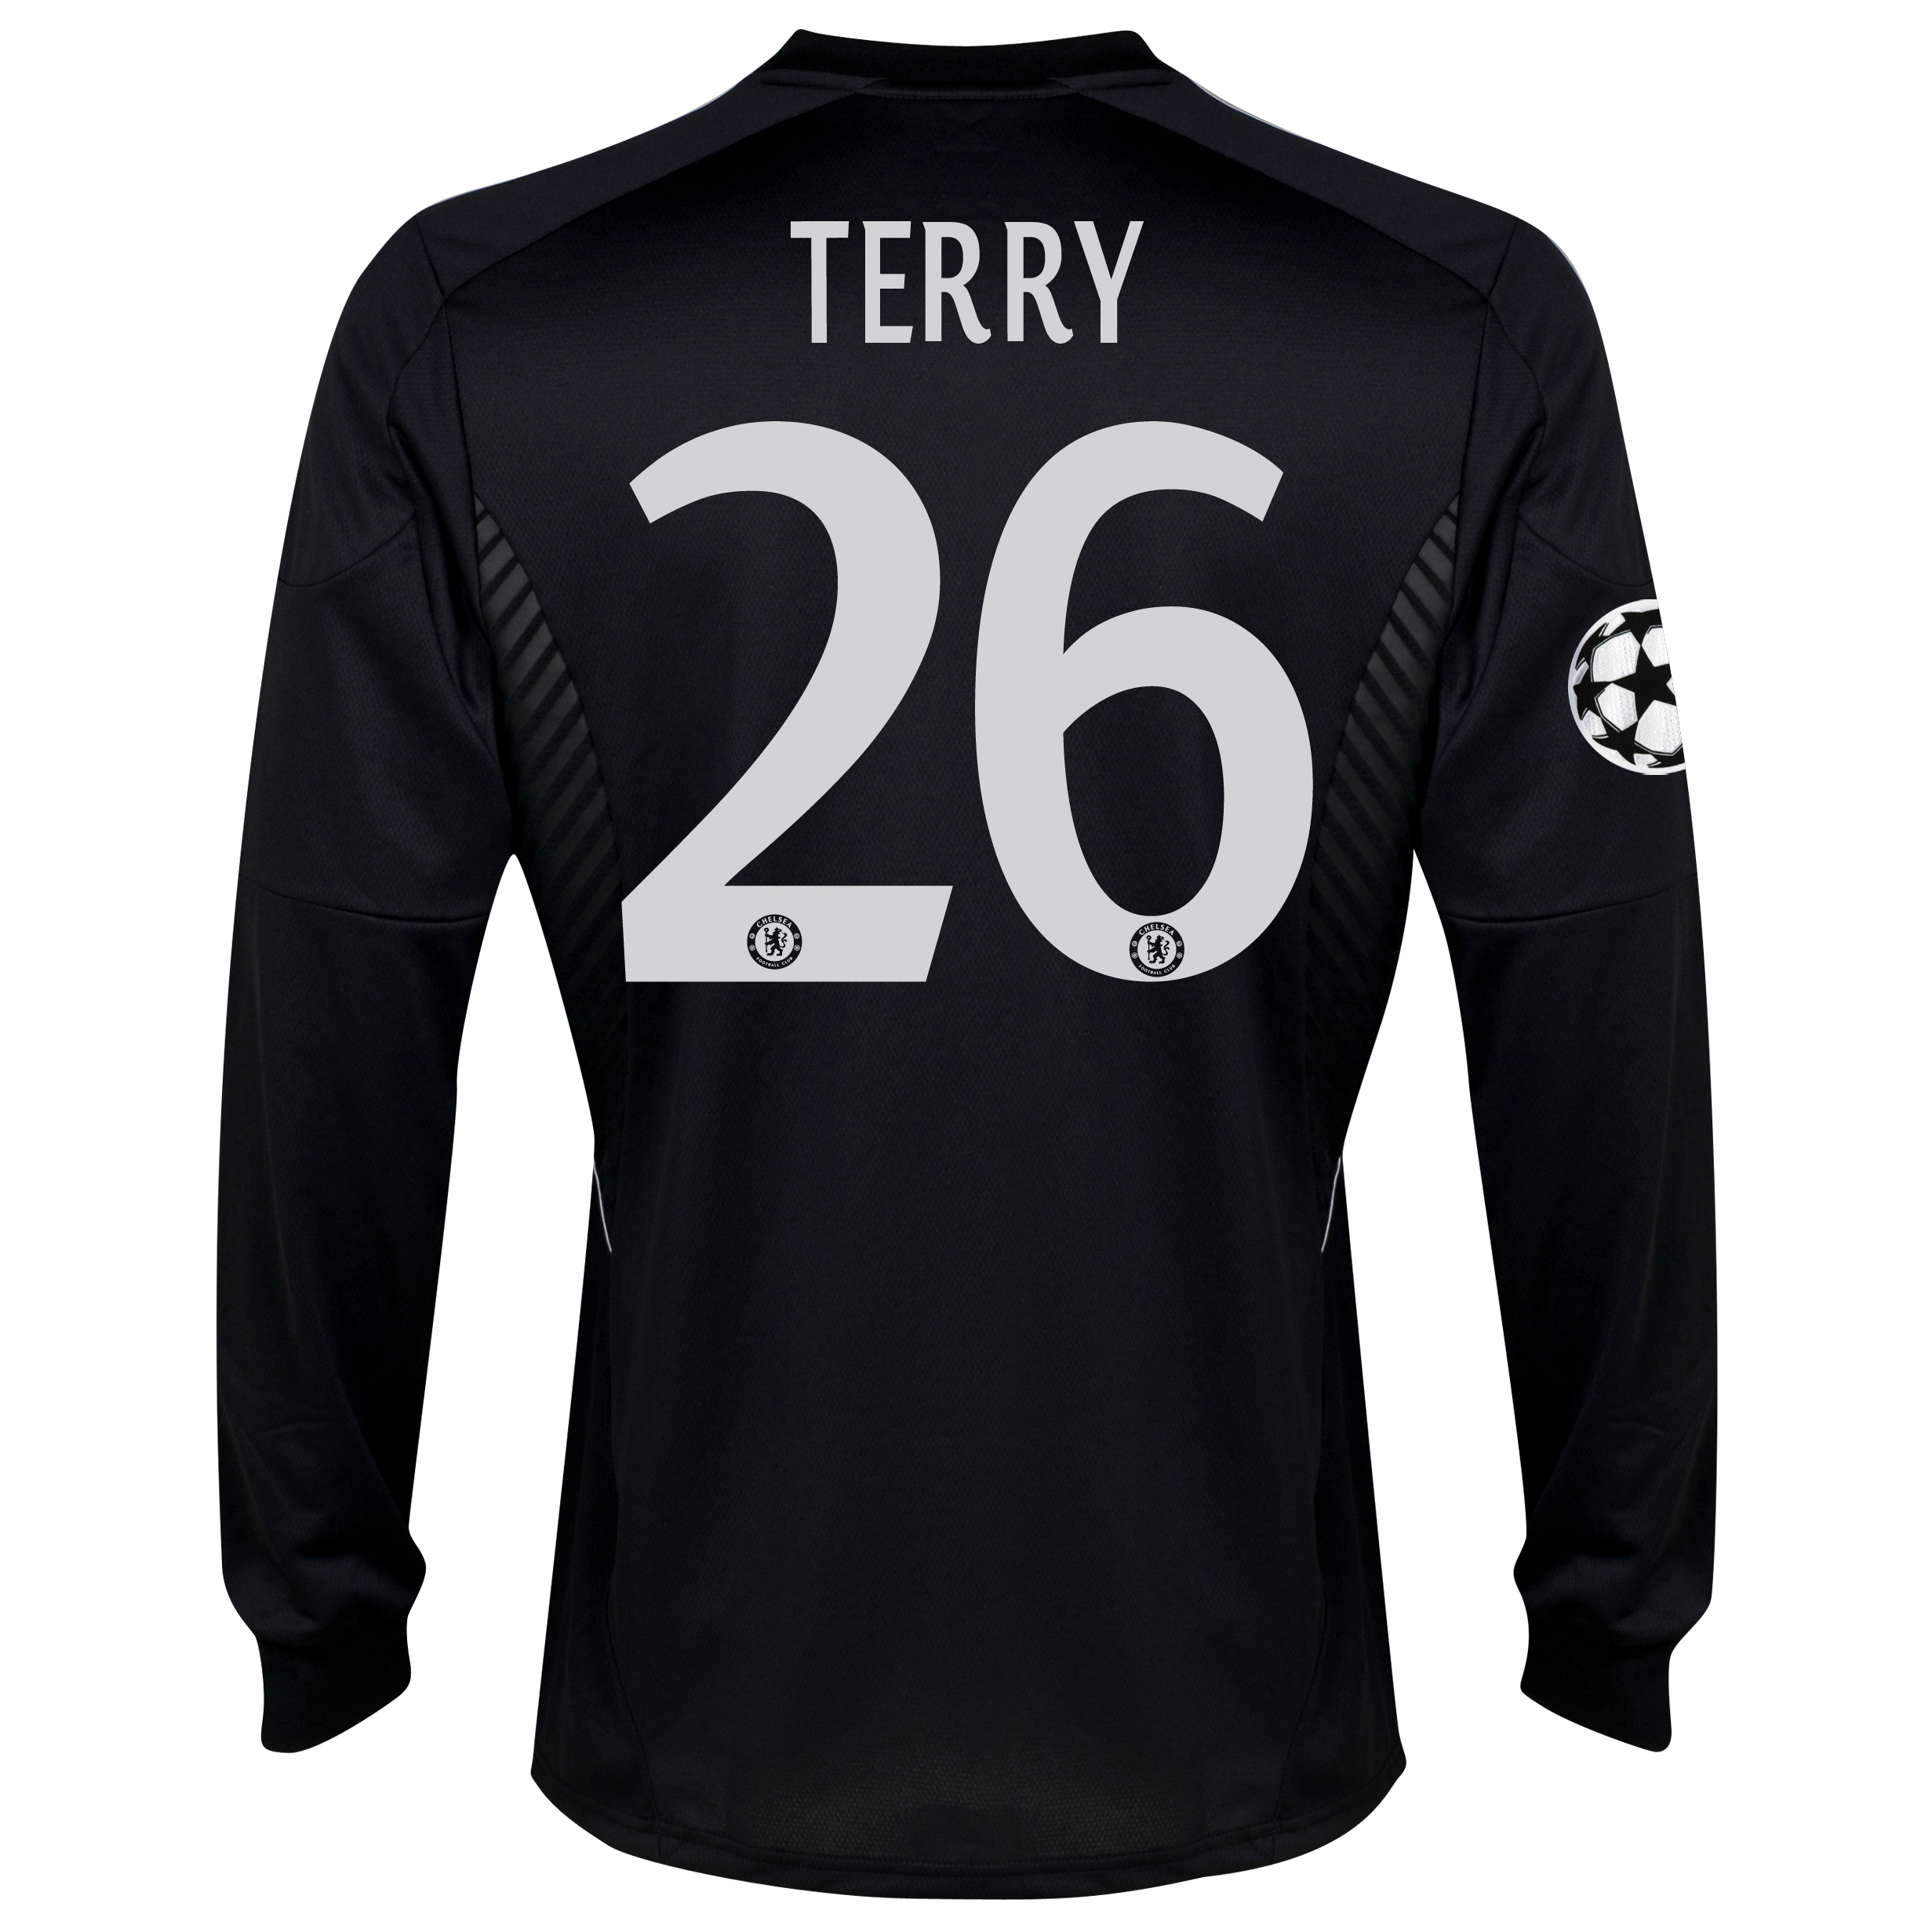 Chelsea UEFA Champions League Third Shirt 2013/14 - Long Sleeve with Terry 26 printing